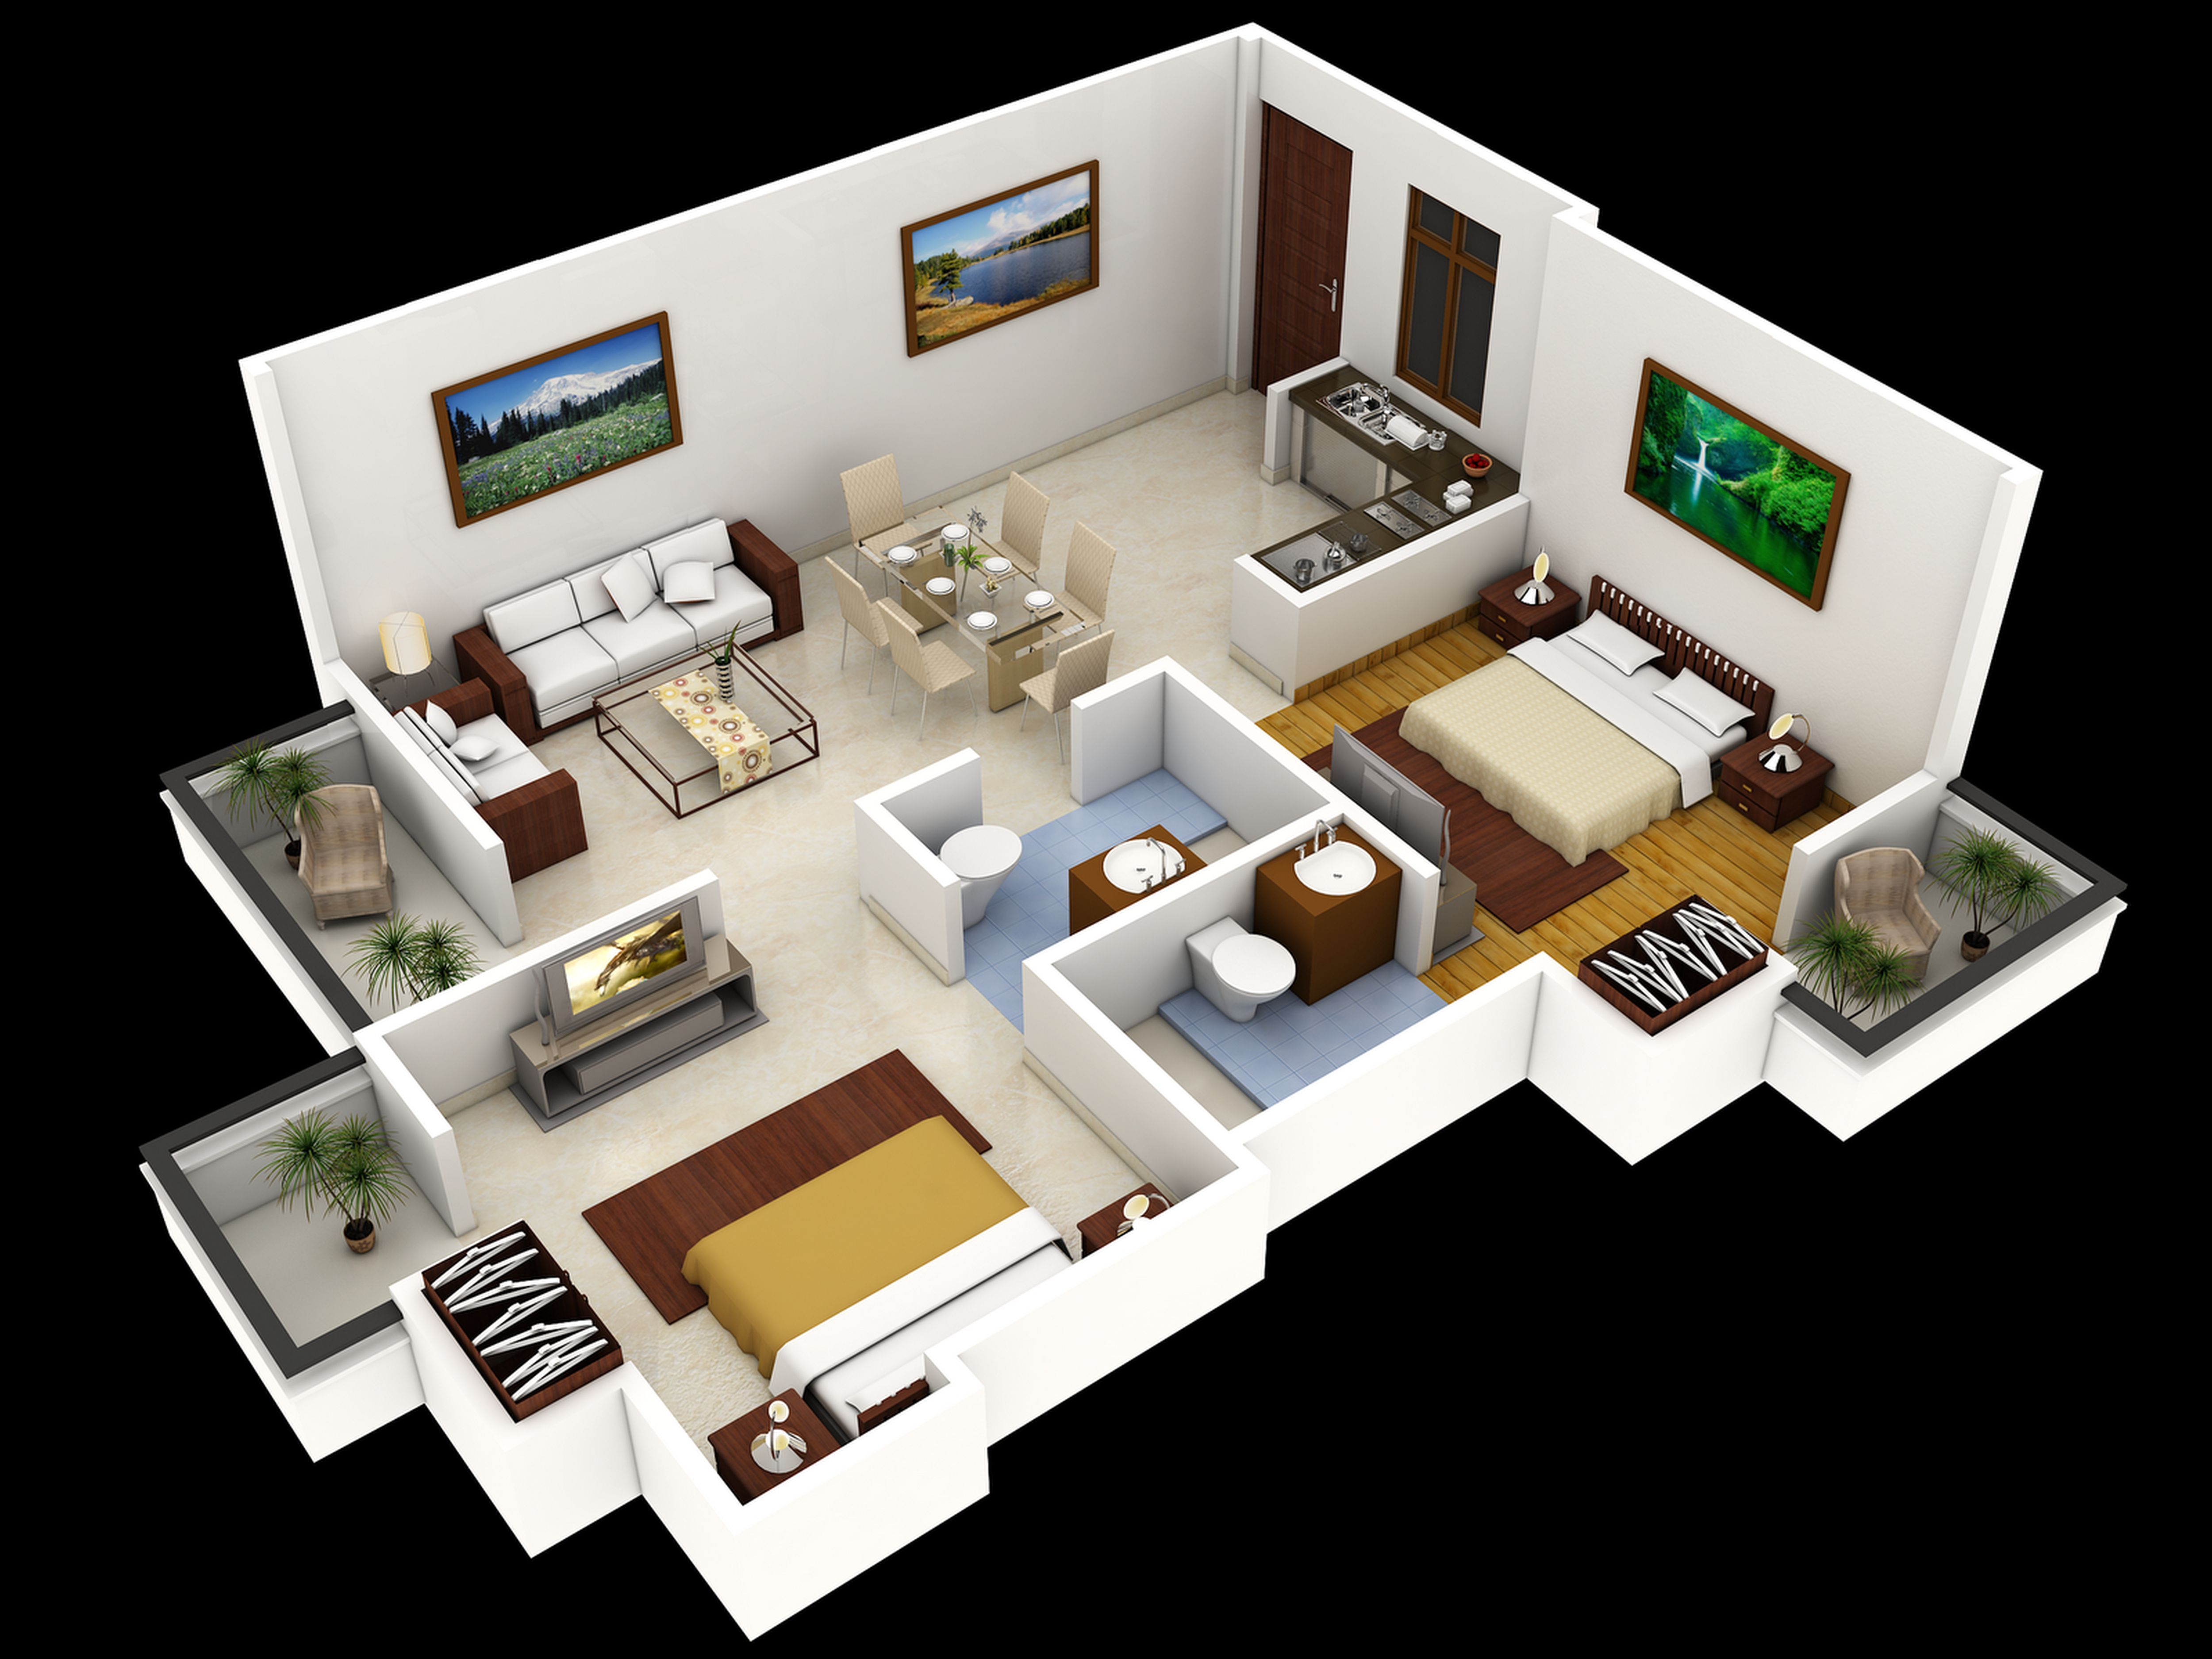 Pin by zikophotography banda on dream home two bedroom for Arredare casa online 3d